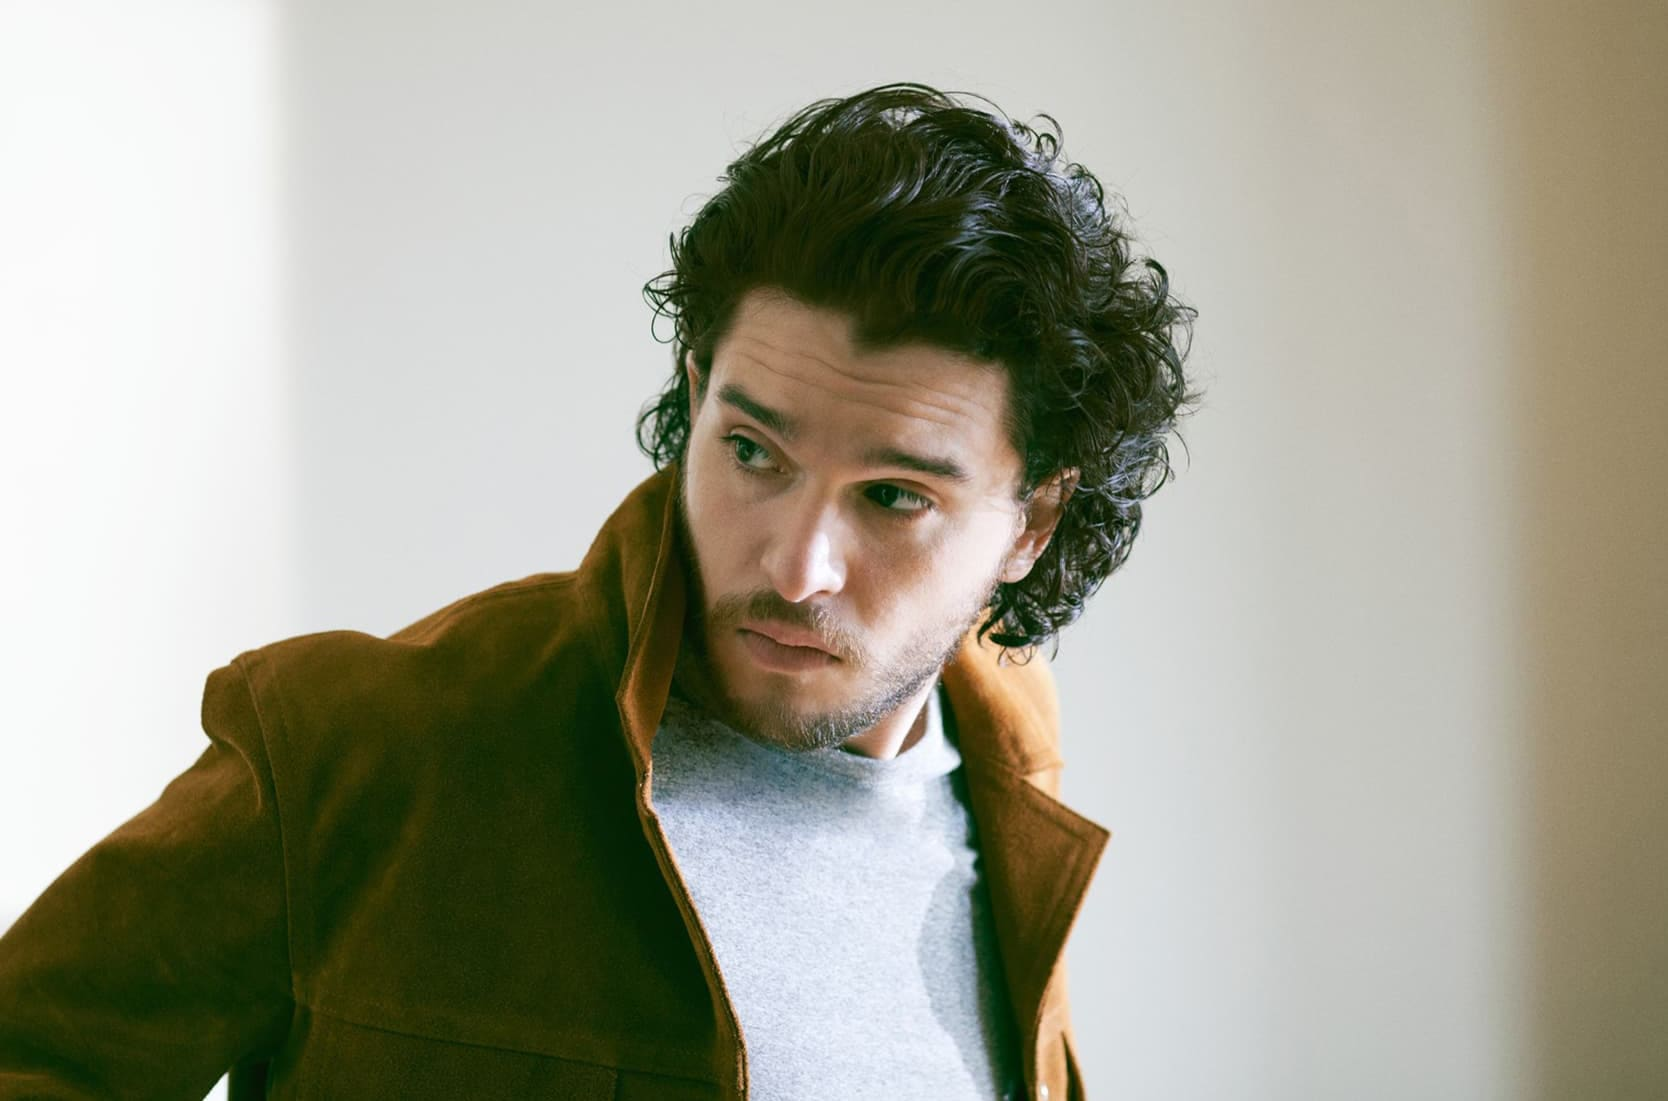 Kit Harington Haircut 2019